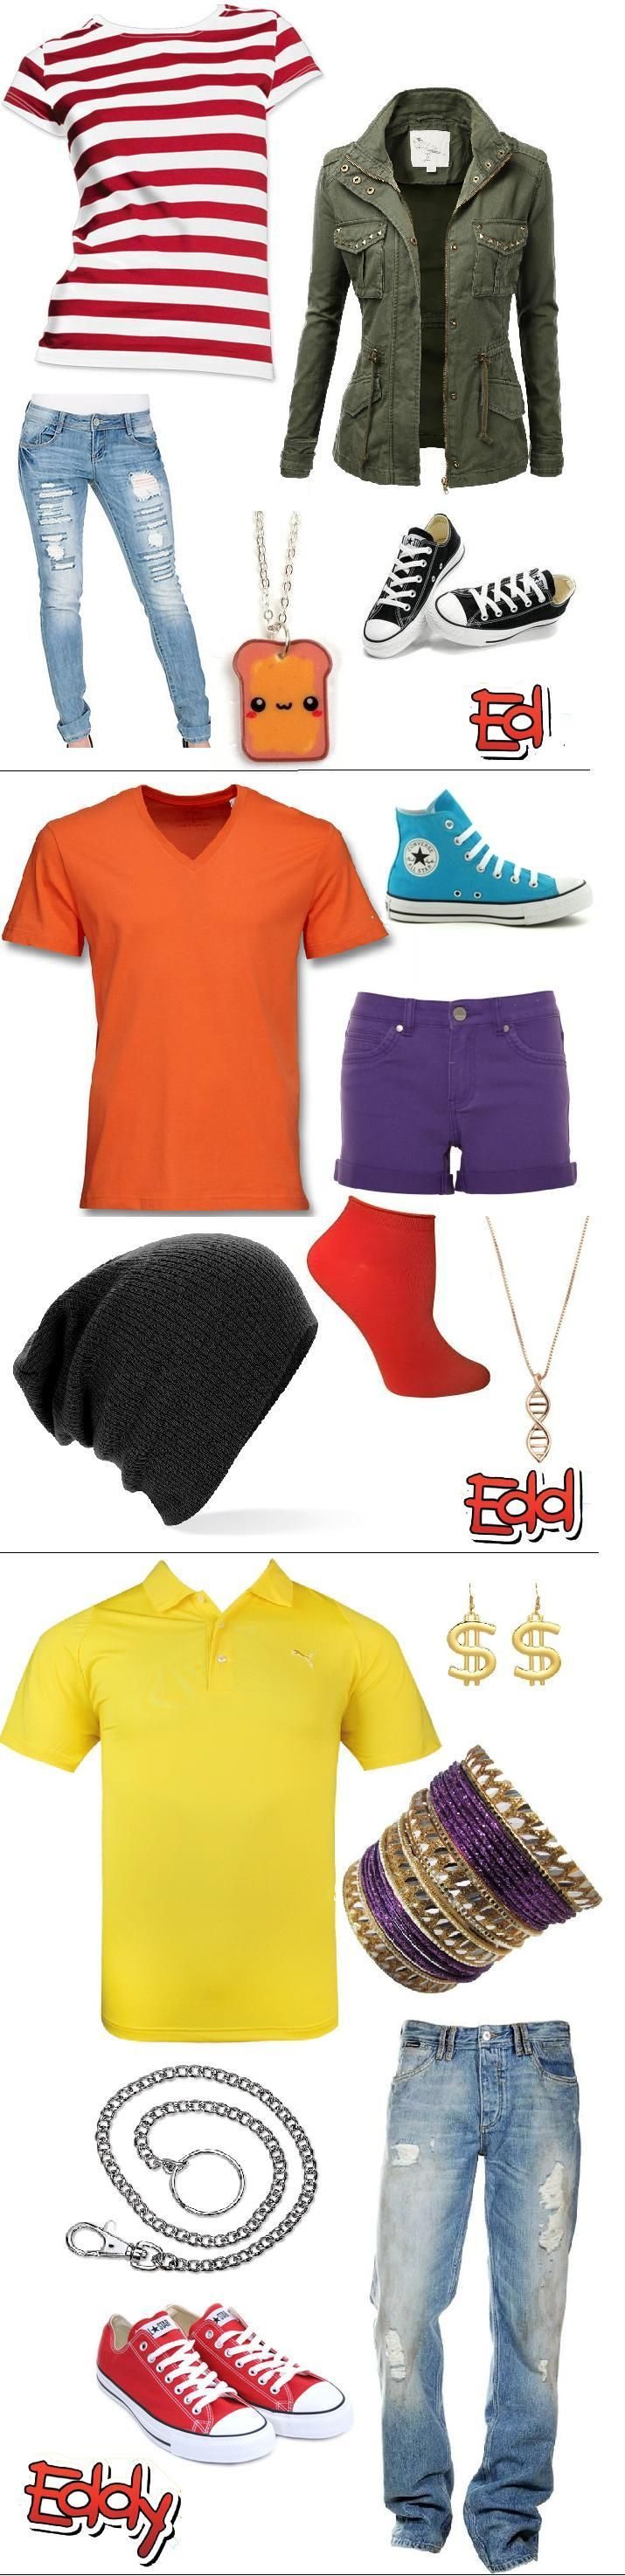 Outfits inspired by the Cartoon Network show Ed, Edd n' Eddy.